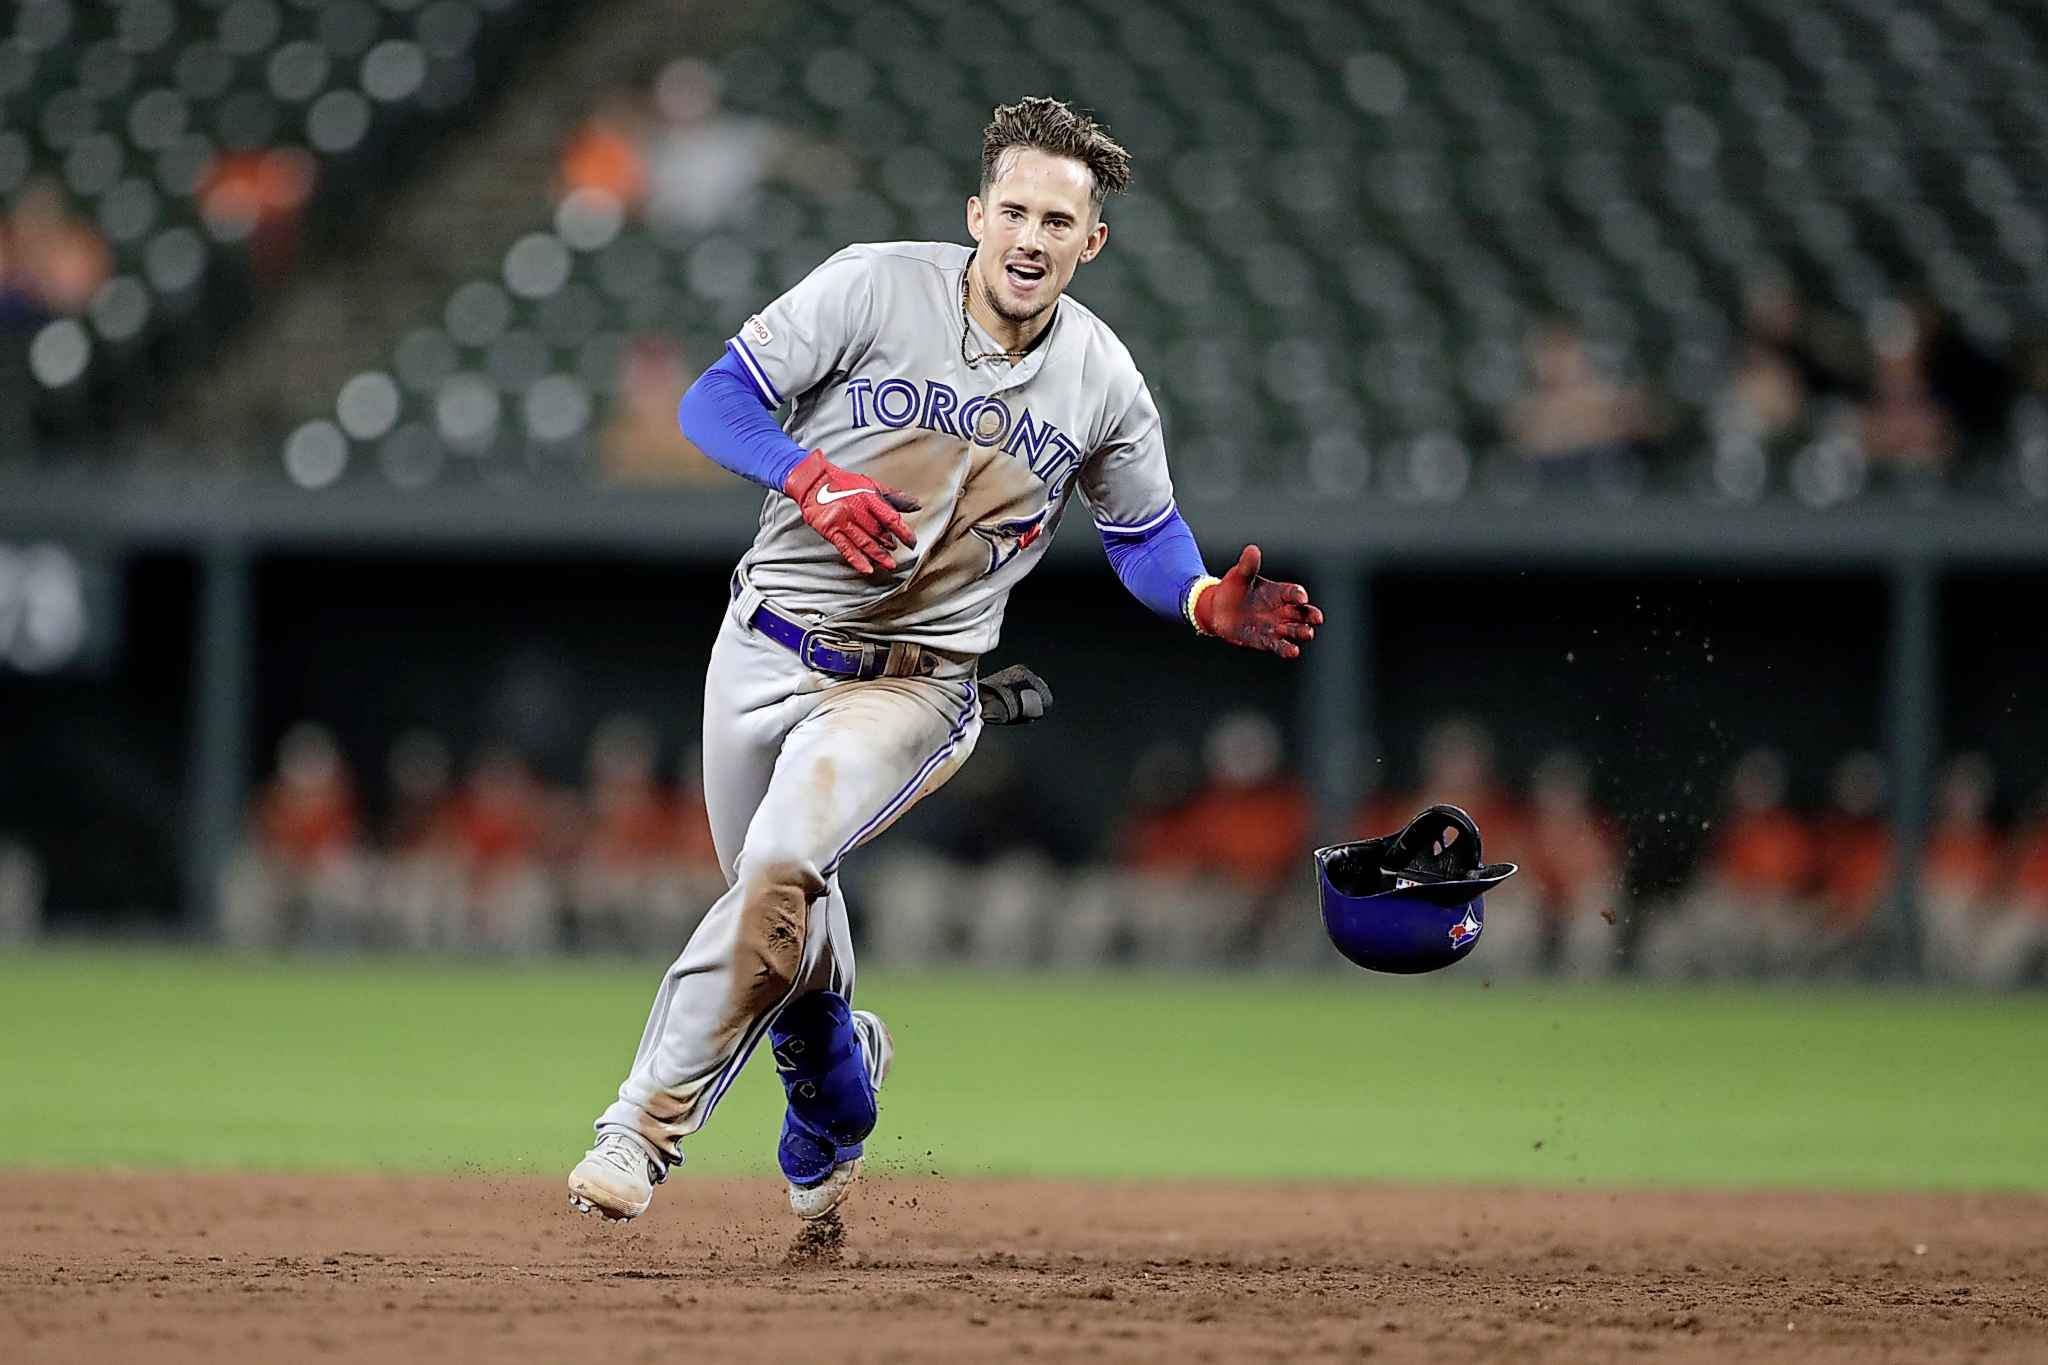 Players will run through walls to follow Cavan  Biggio. (Julio Cortez / Associated Press files)